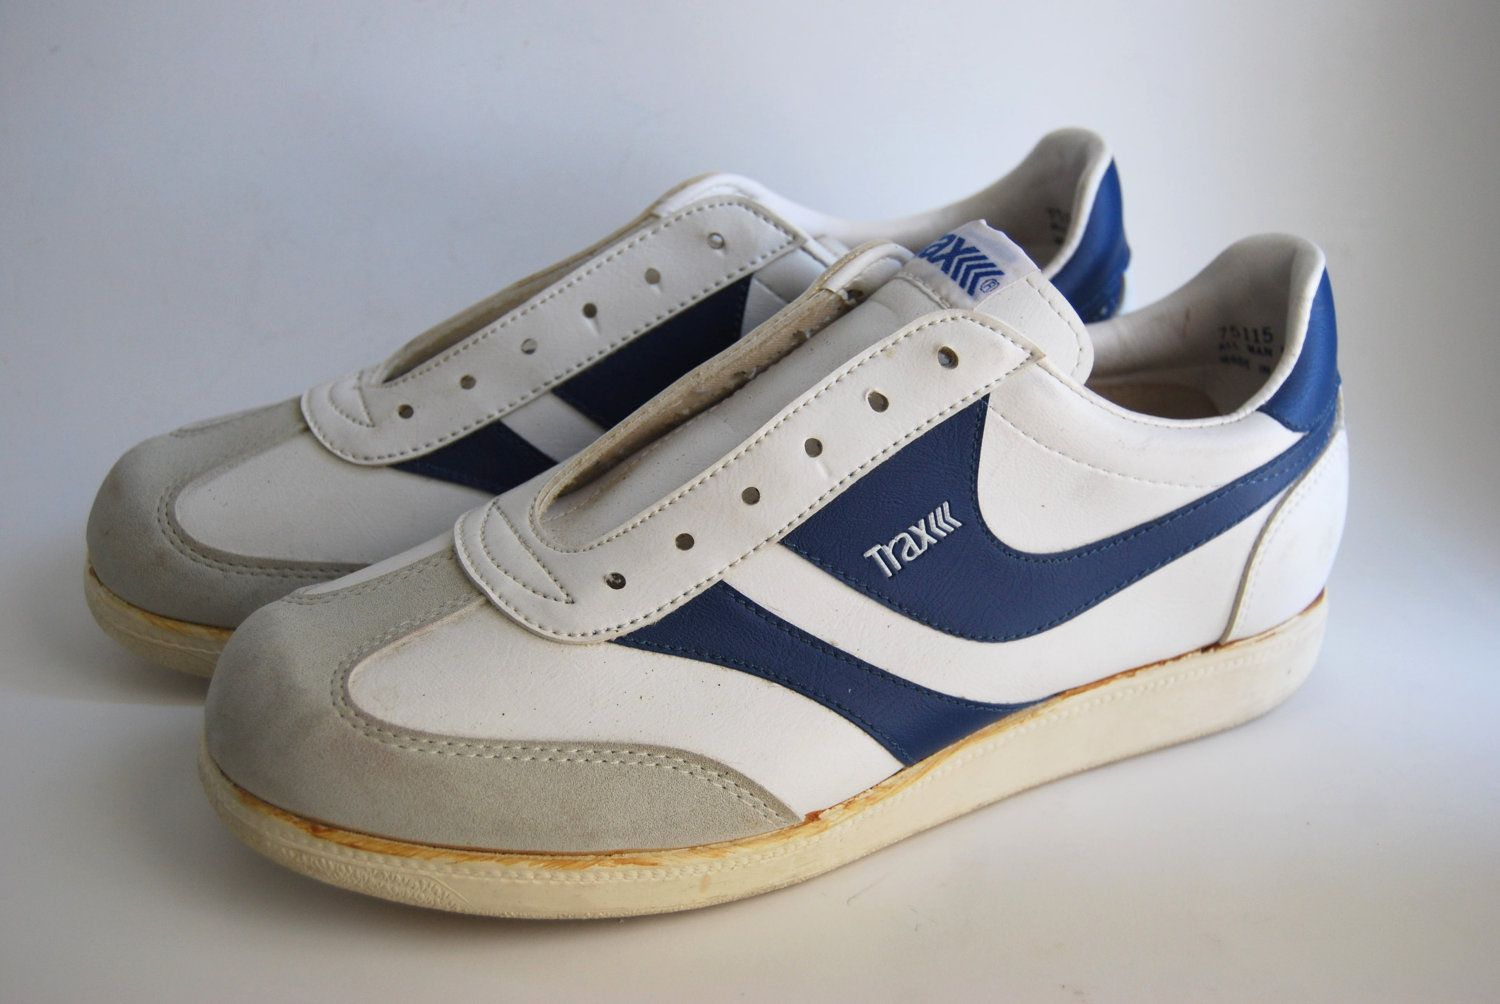 Trax shoes from K-mart. These were actually not cool at all. They